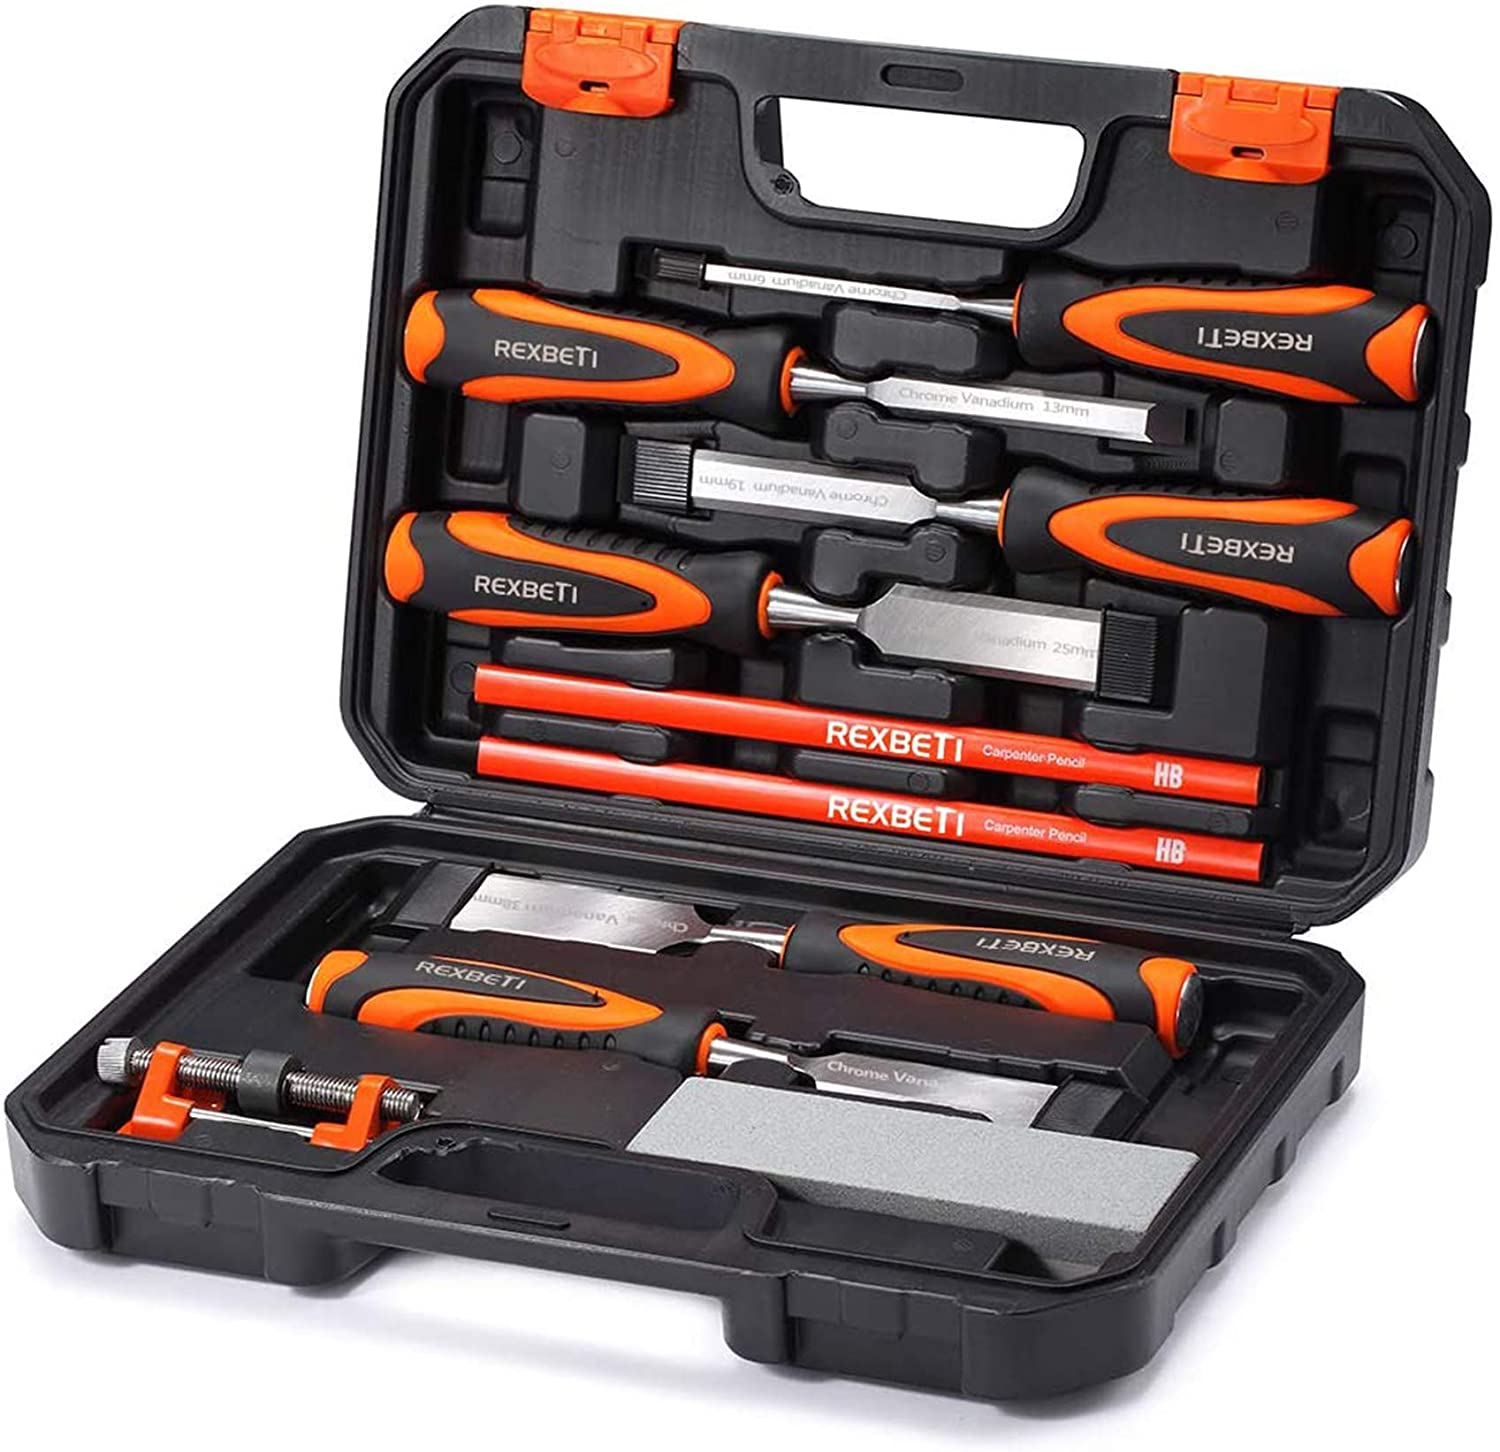 Check out 48 All-Around Woodworking Hand Tools For Your Workspace at https://diyprojects.com/woodworking-hand-tools-amazon/